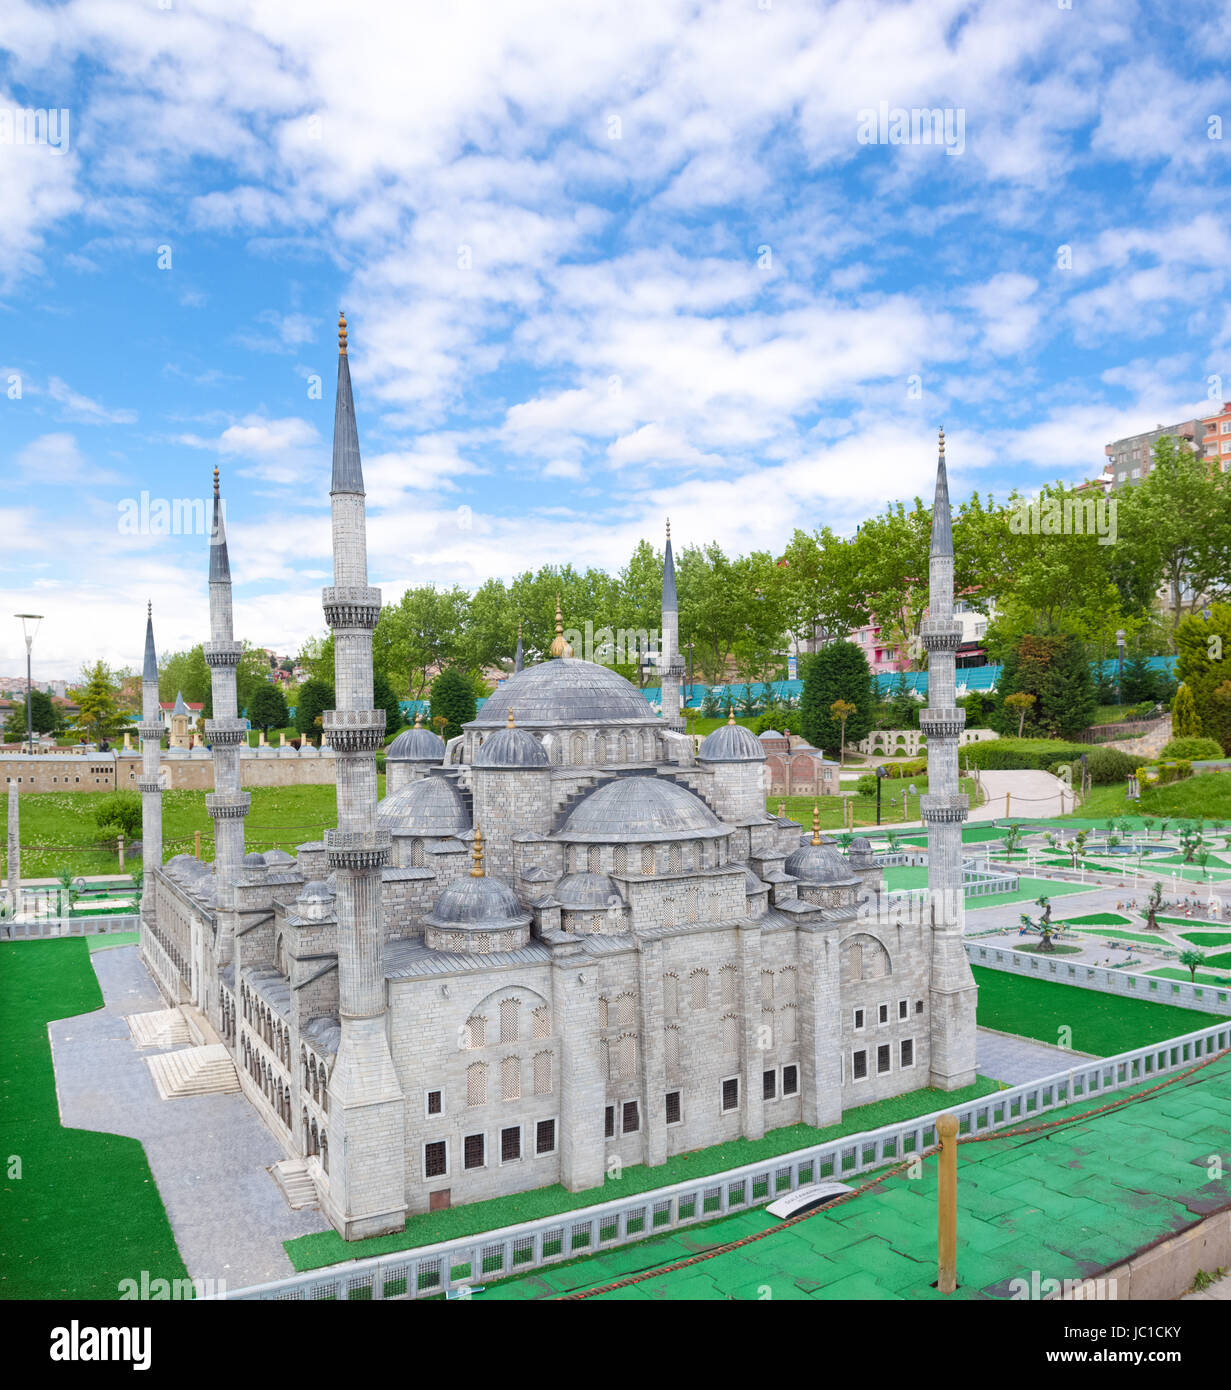 Miniaturk park in istanbul, the largest miniature park in the world. The park contains 105 buildings, each replicated - Stock Image